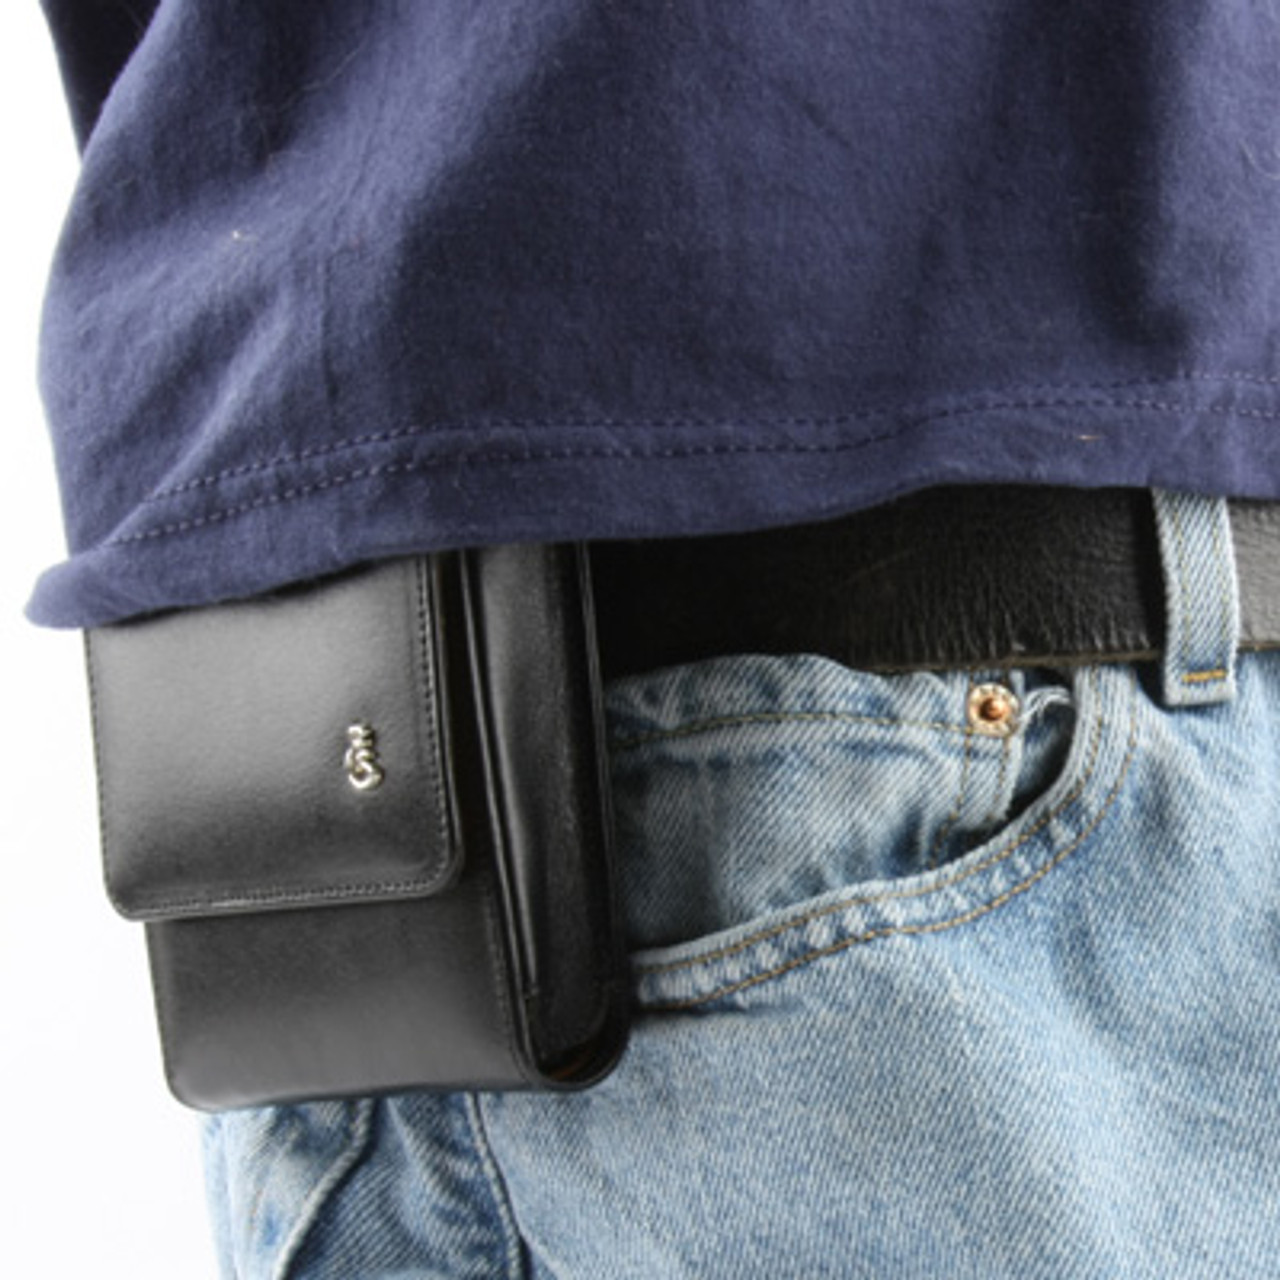 SCCY CPX-2 Concealed Carry Holster (Belt Loop)